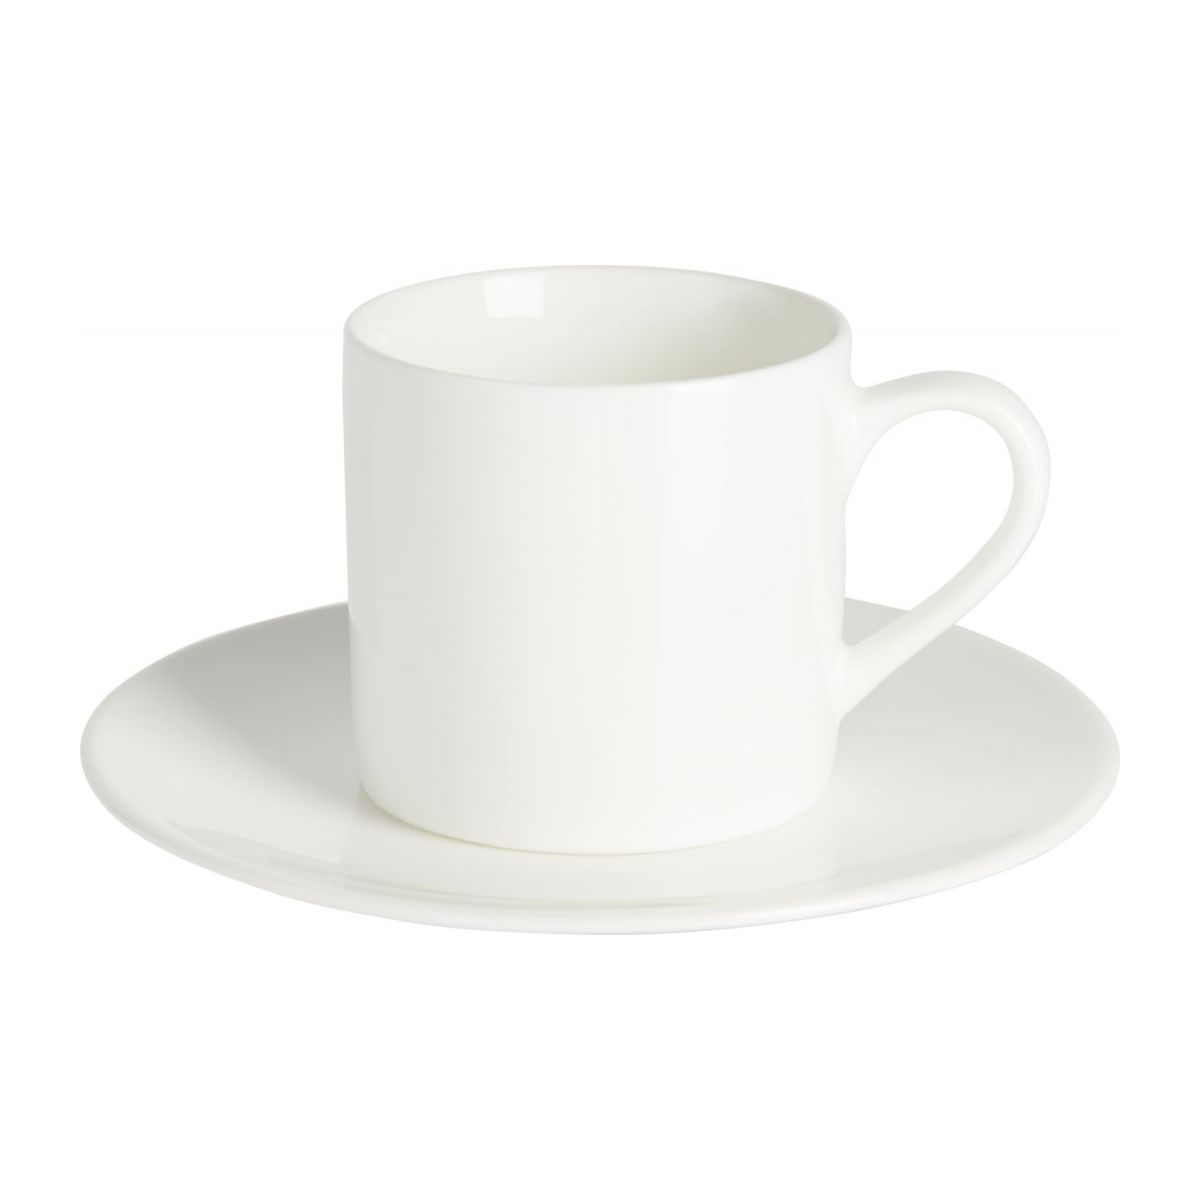 Coffee cup and saucer n°3